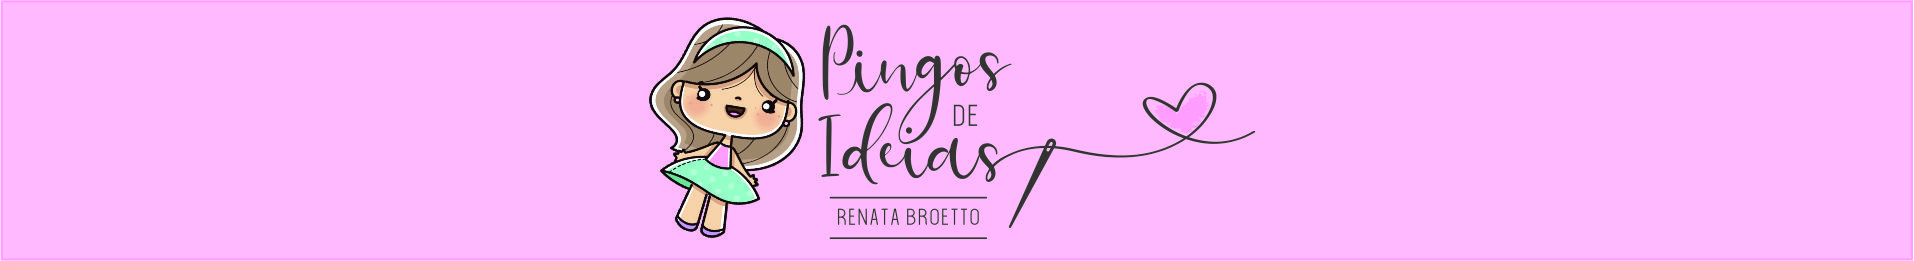 Pingos de Idias